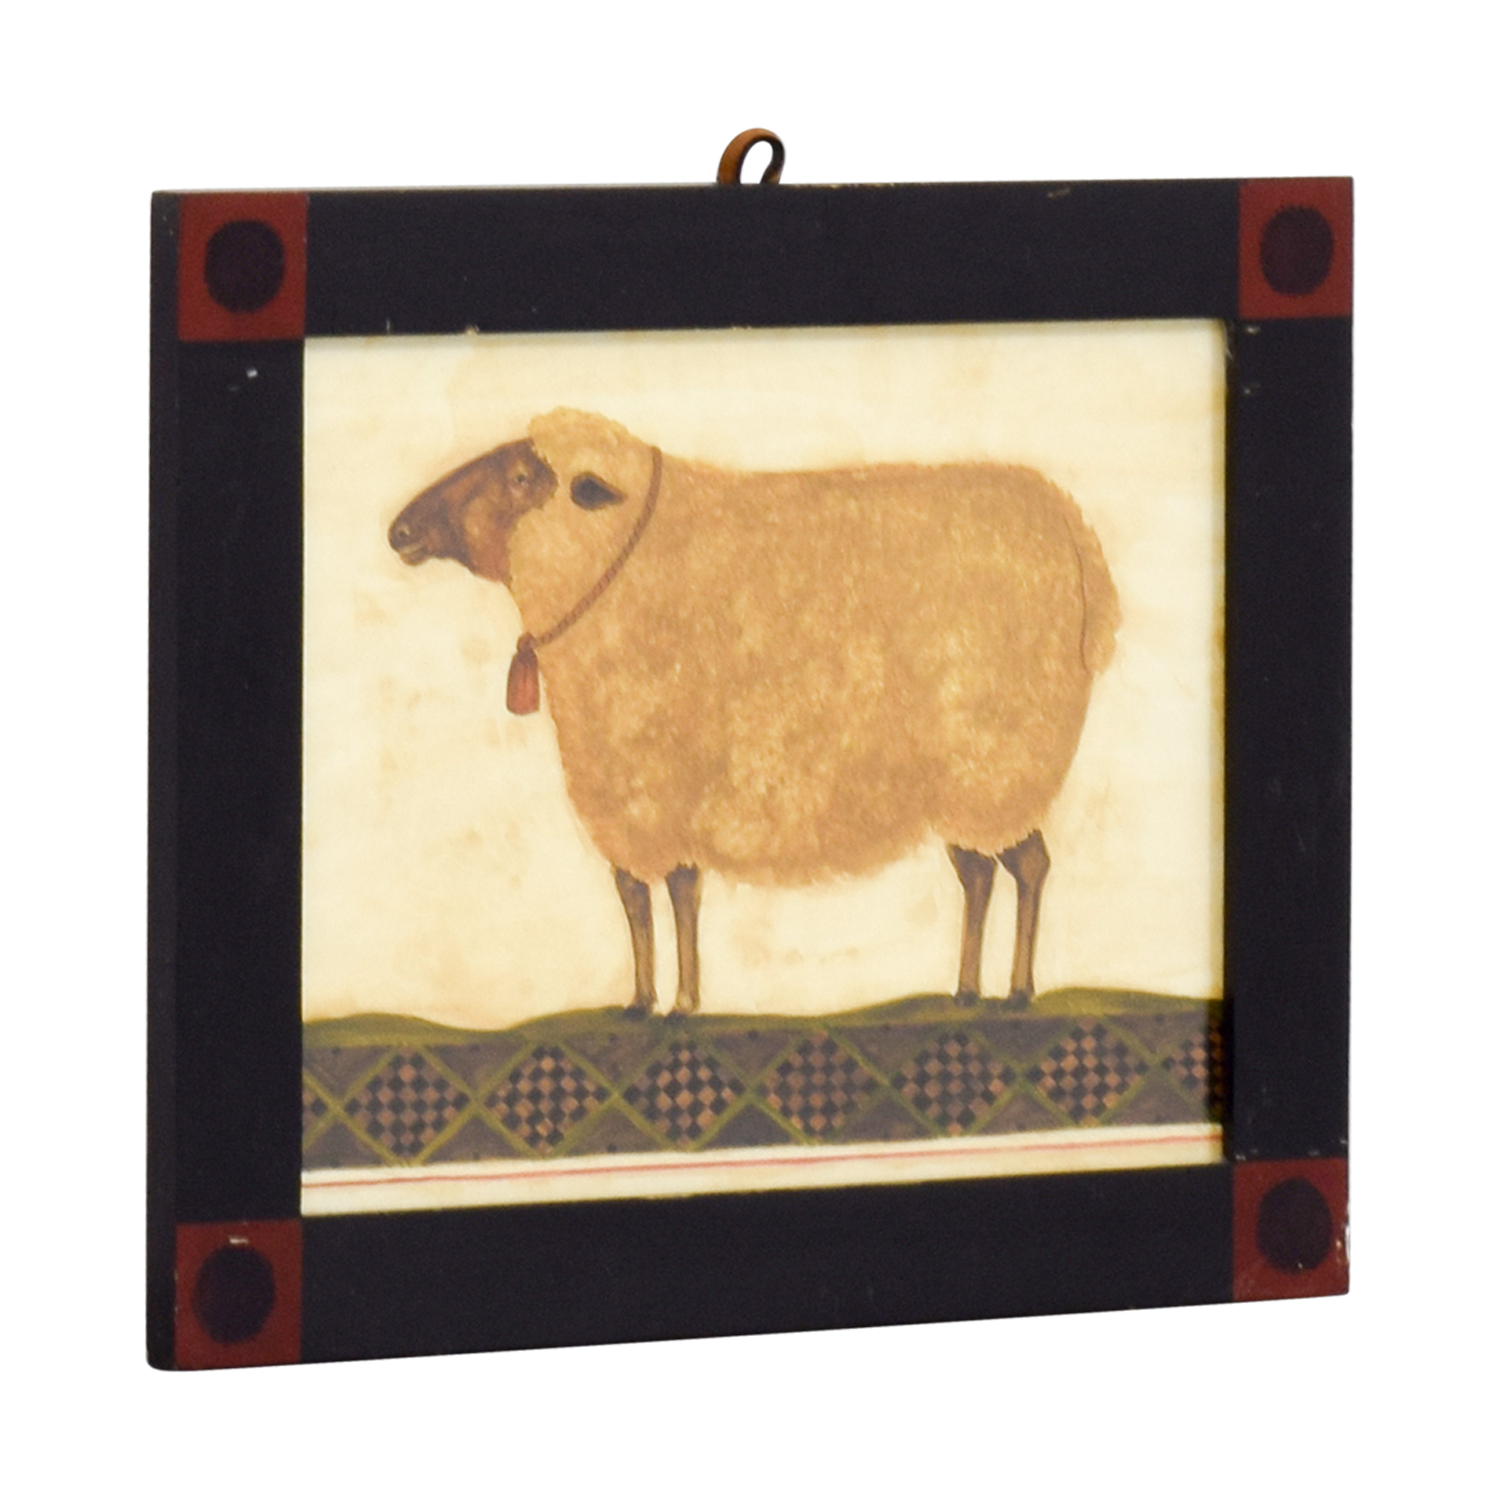 Rustic Sheep Framed Artwork second hand